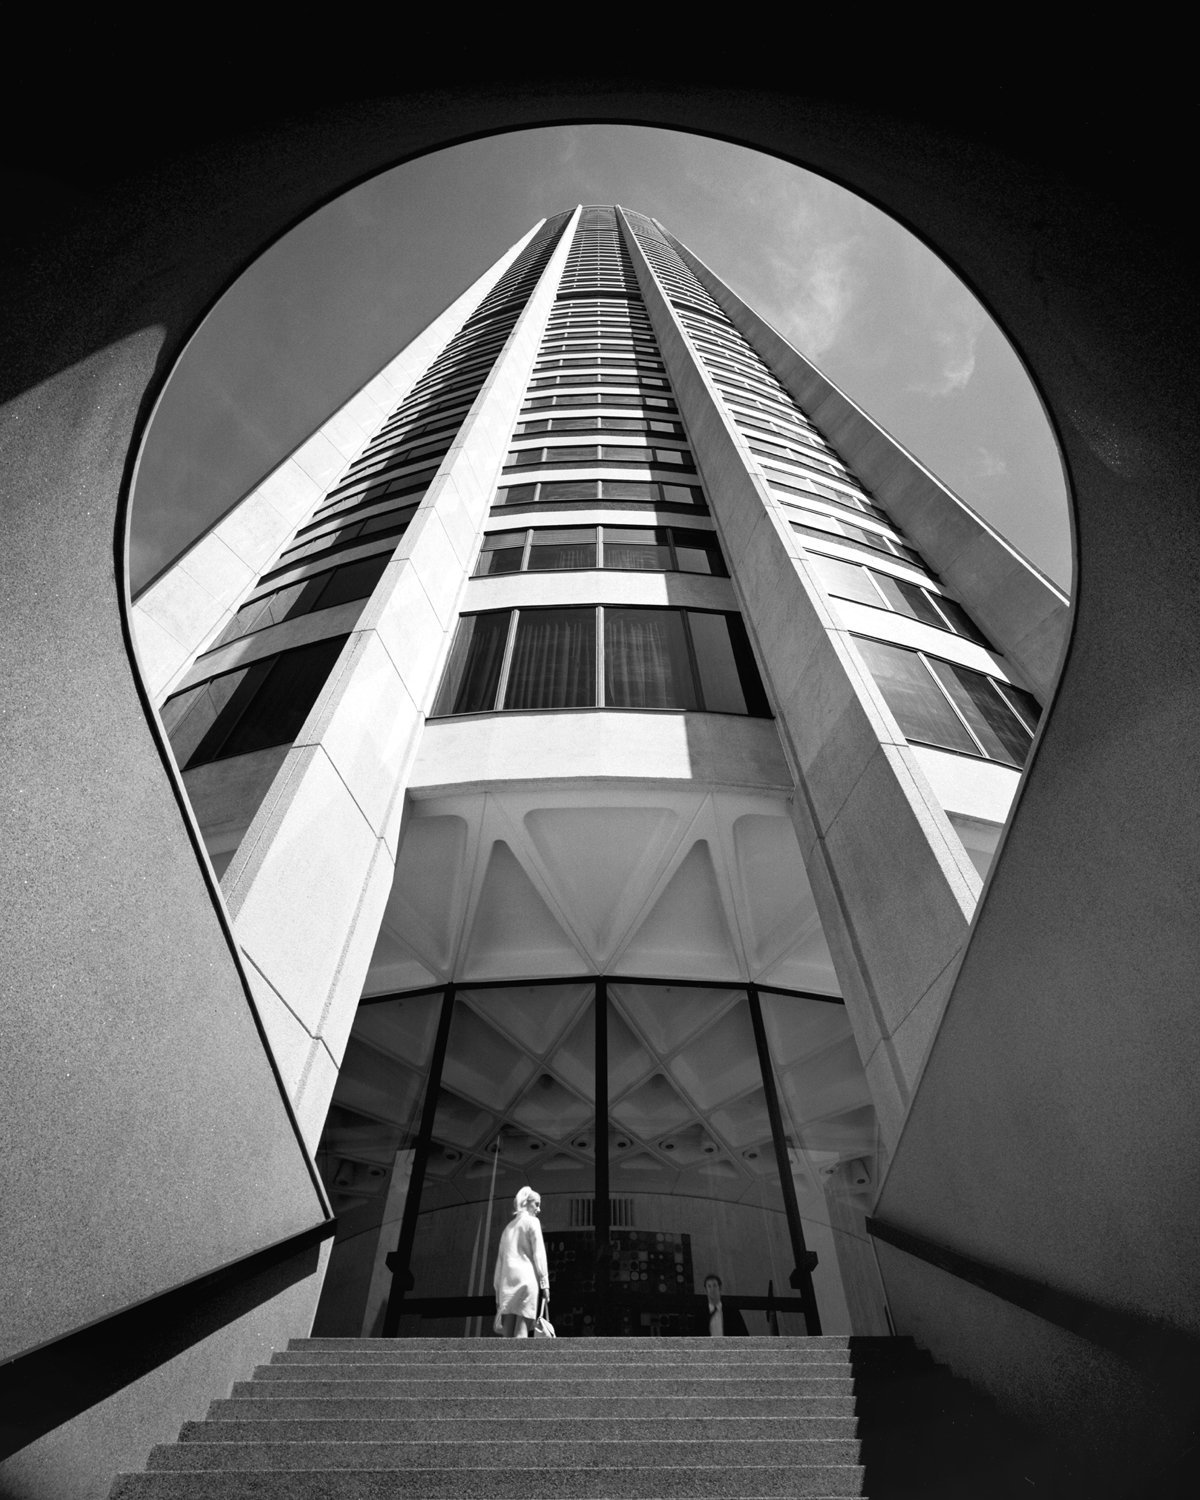 Probably the most iconic Harry Seidler building, Australia Square Tower (1961-1967). Photograph by the legendary  Max Dupain .